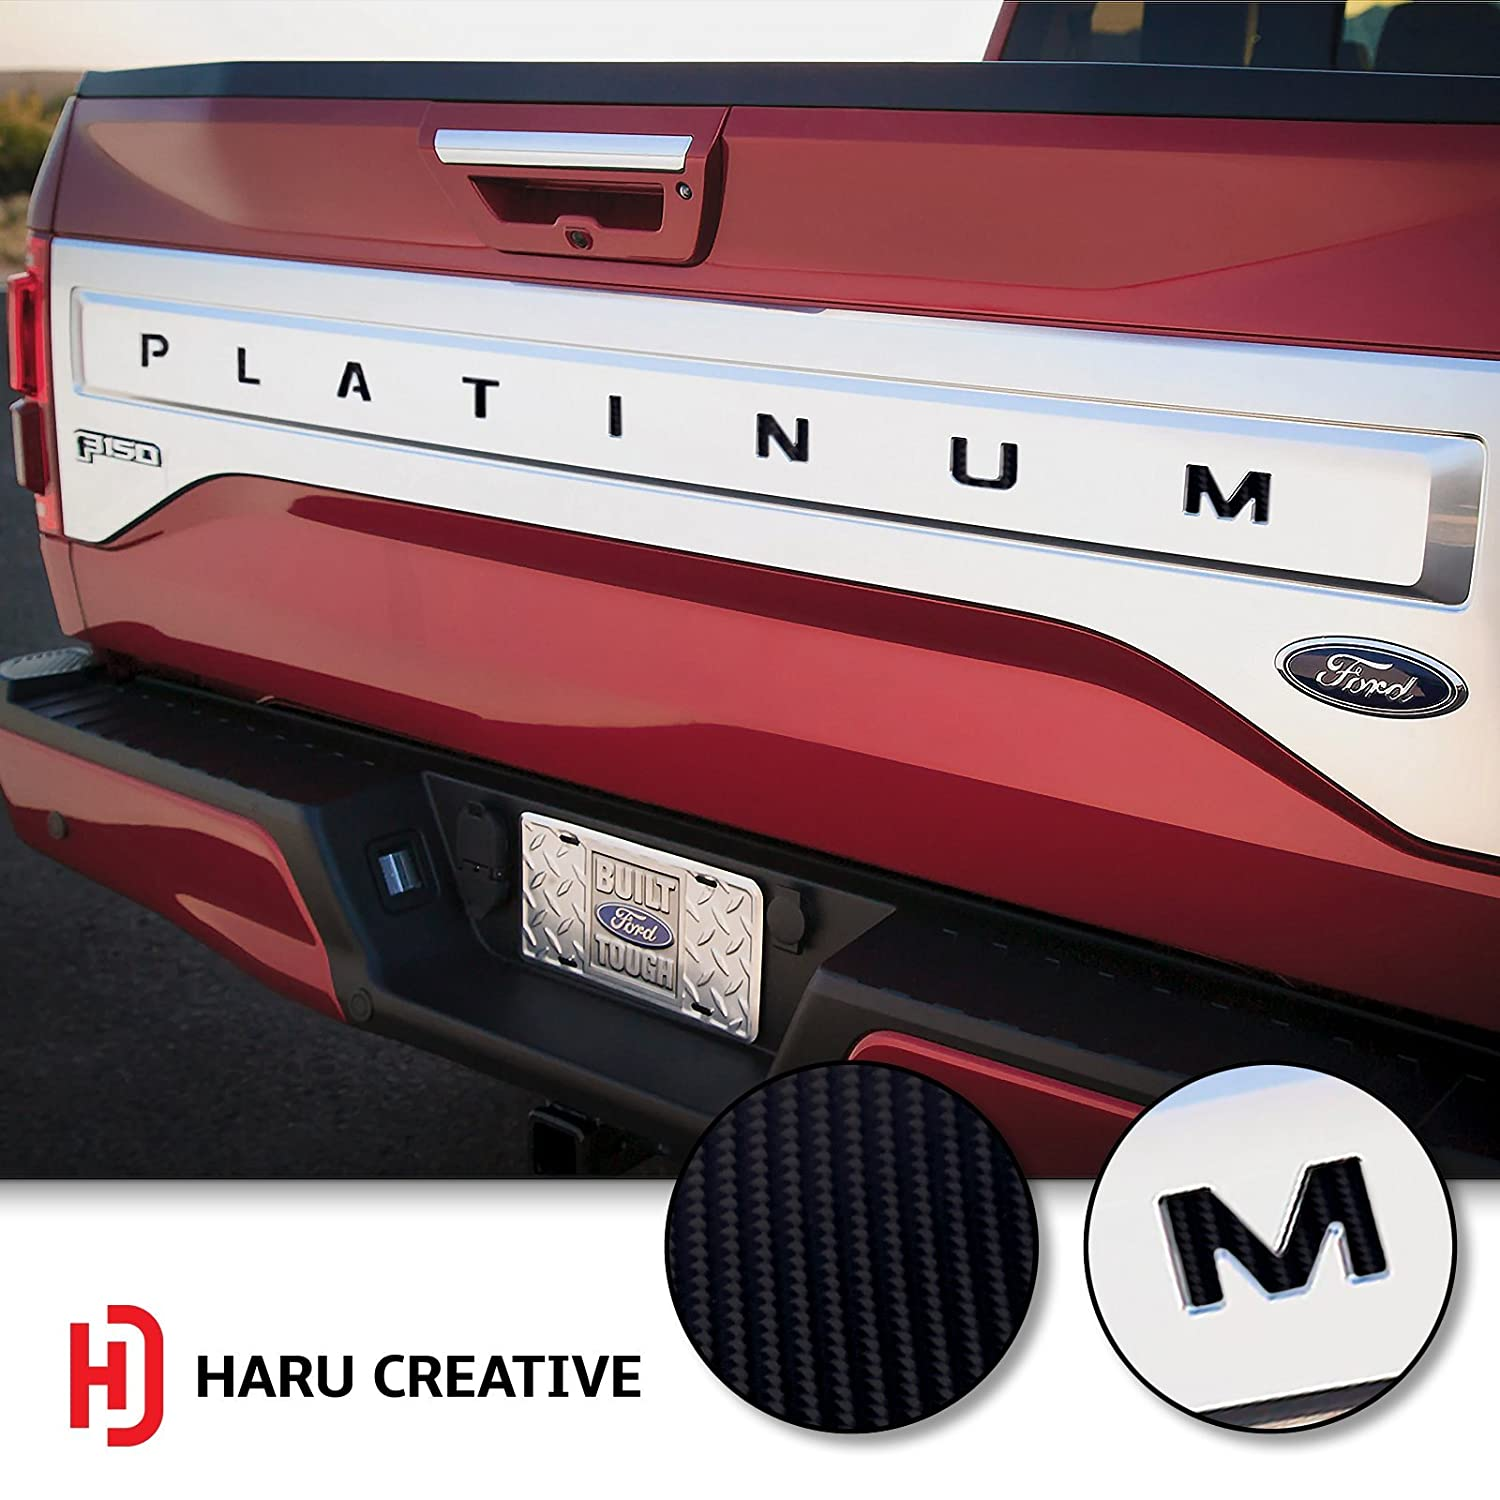 Rear Trunk Tailgate Letter Insert Overlay Vinyl Decal Compatible Fits Ford Platinum 2015 2016 2017 Haru Creative - 4D Carbon Fiber Black